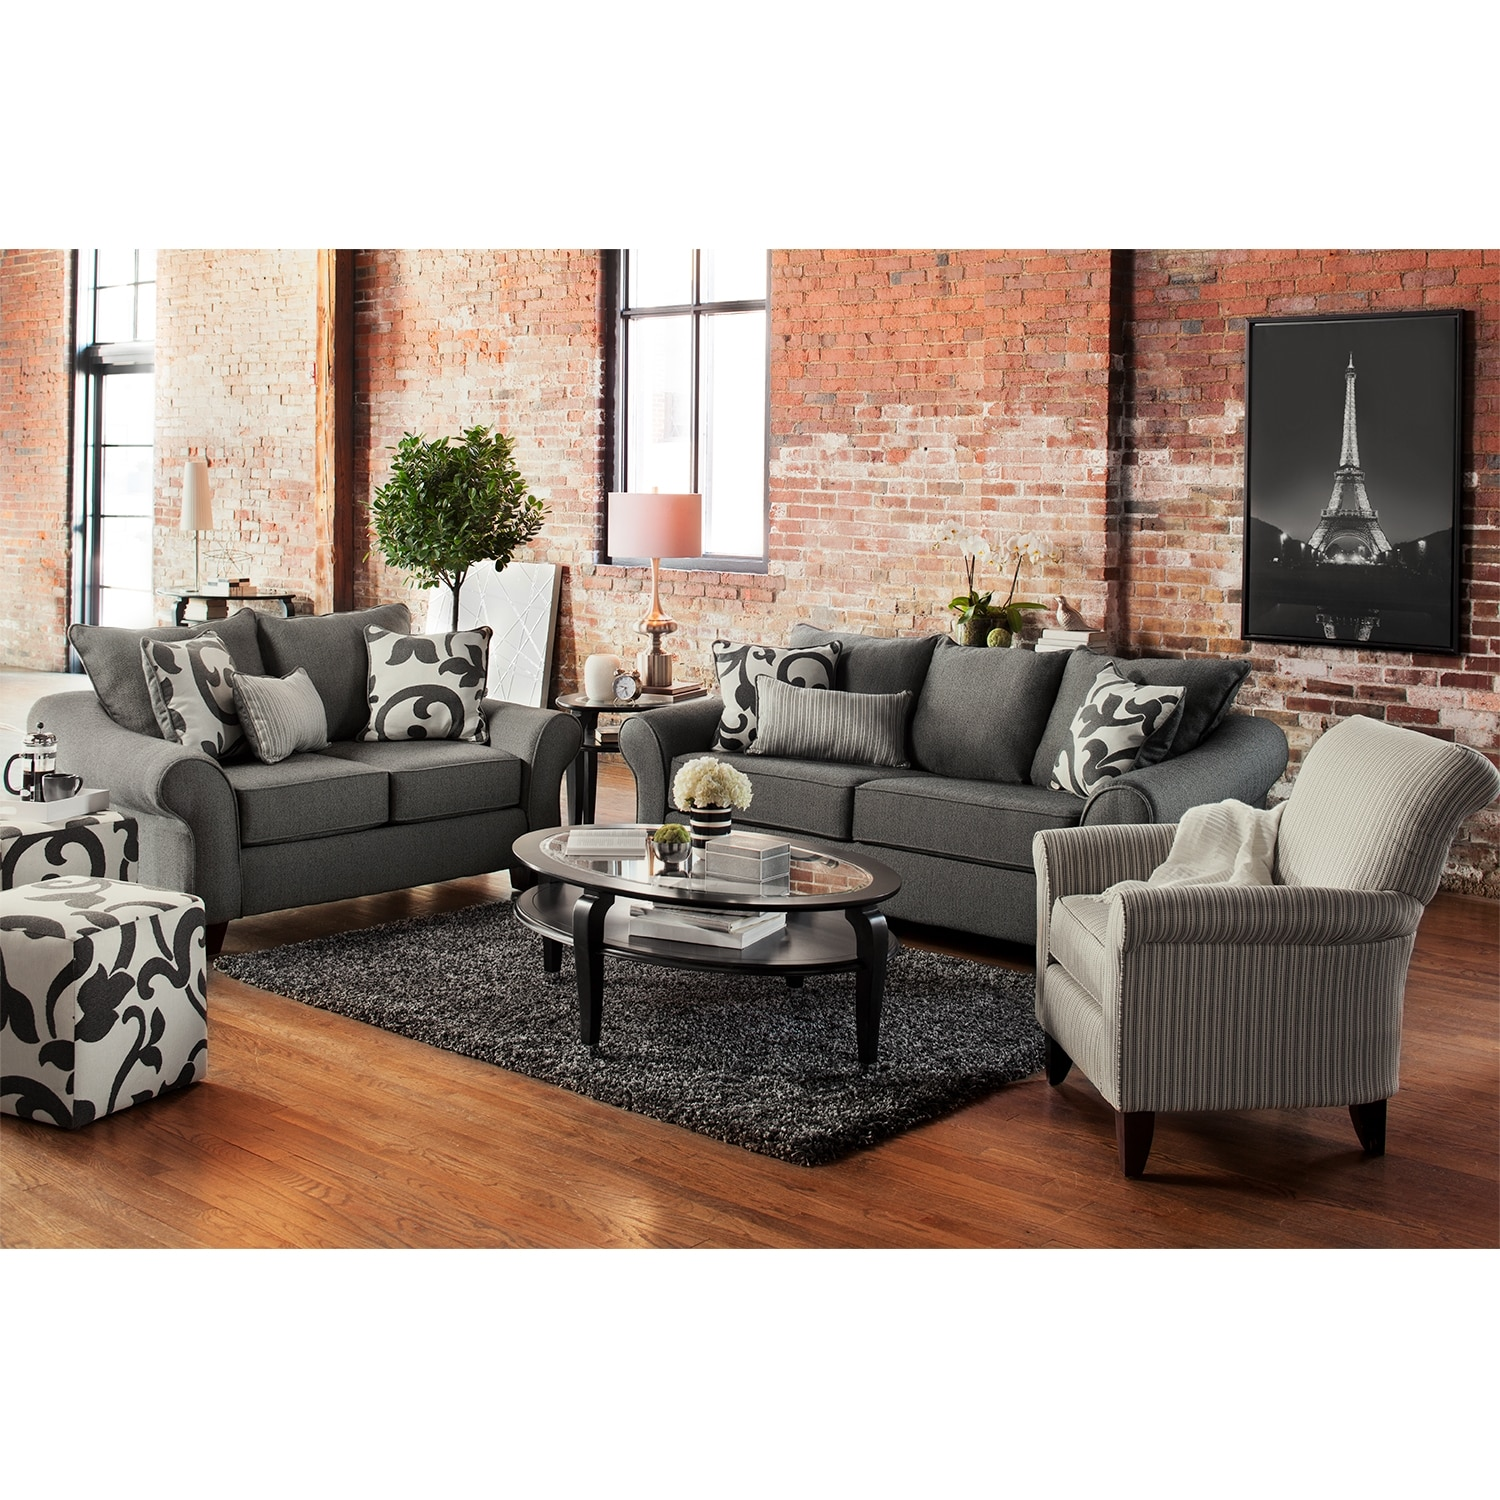 Colette Full Memory Foam Sleeper Sofa - Gray : American Signature Furniture